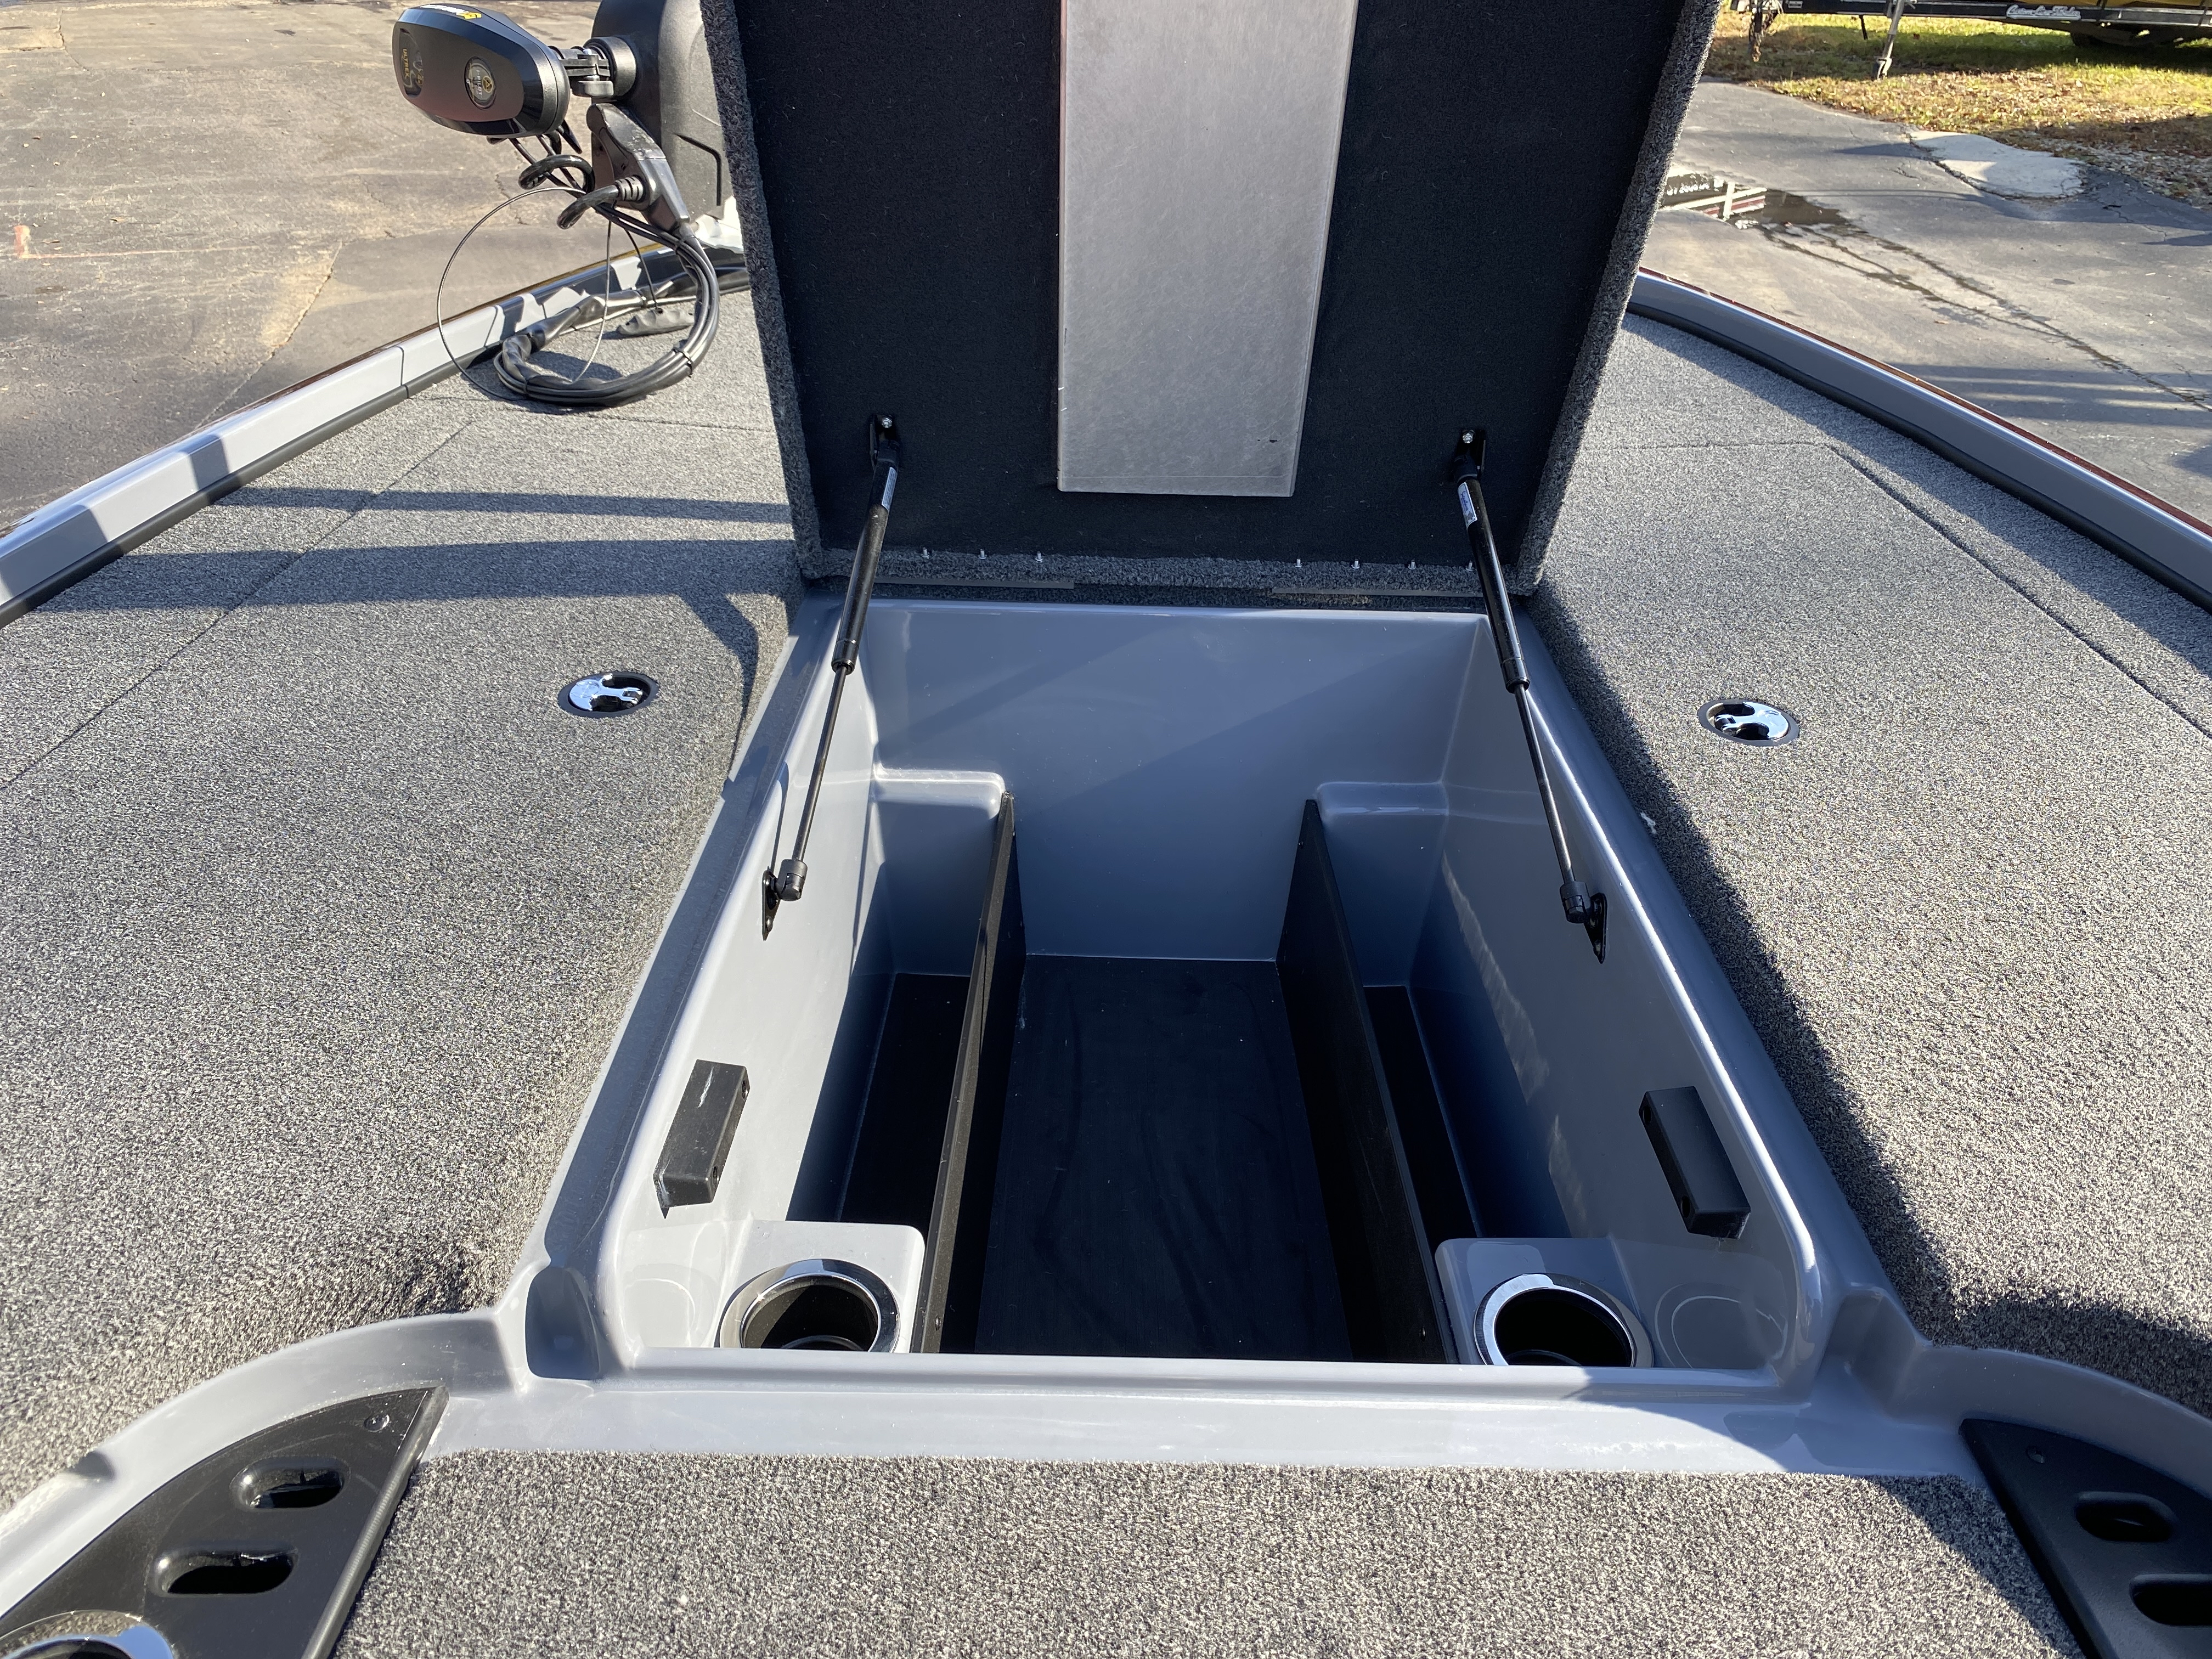 2021 Nitro boat for sale, model of the boat is Z18 H1 & Image # 28 of 28